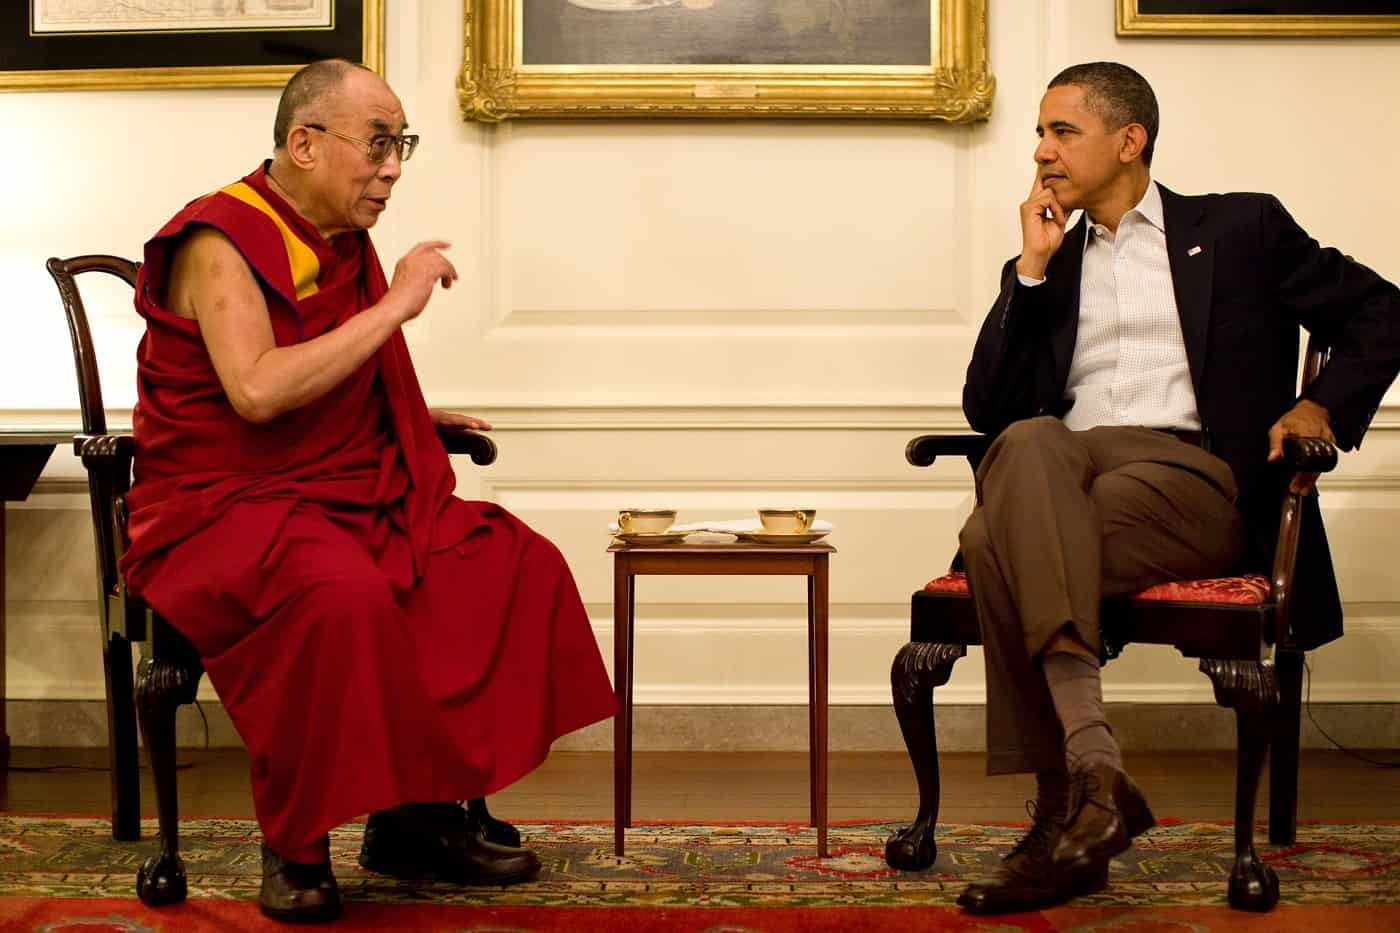 The Dalai Lama and Barack Obama converse - Identity politics